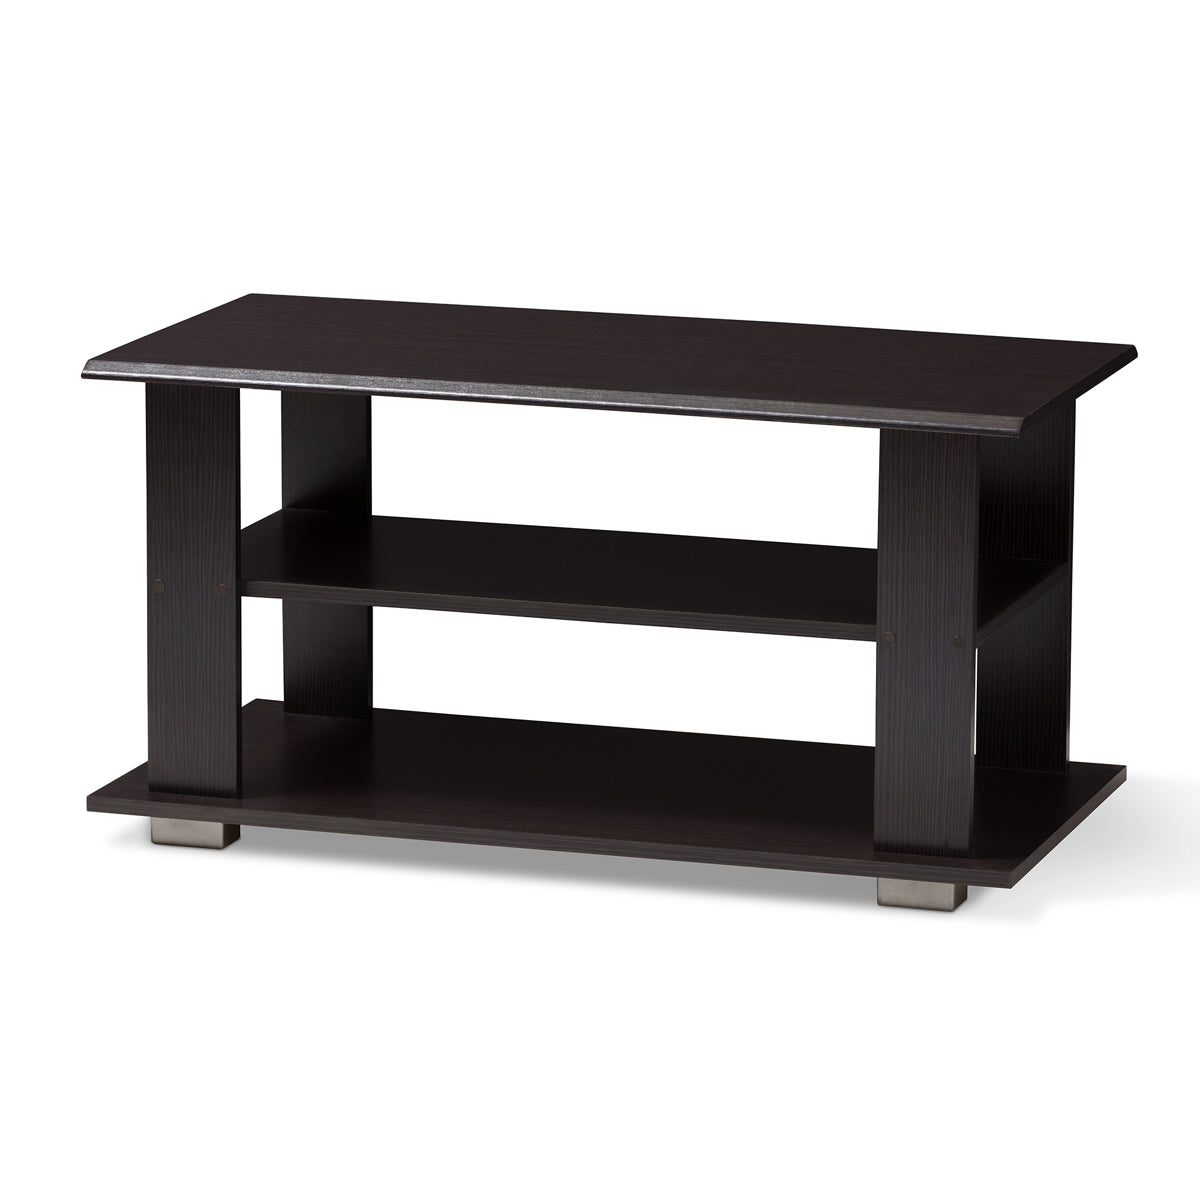 Baxton Studio Joliette Modern and Contemporary Wenge Brown Finished Coffee Table Baxton Studio-coffee tables-Minimal And Modern - 1